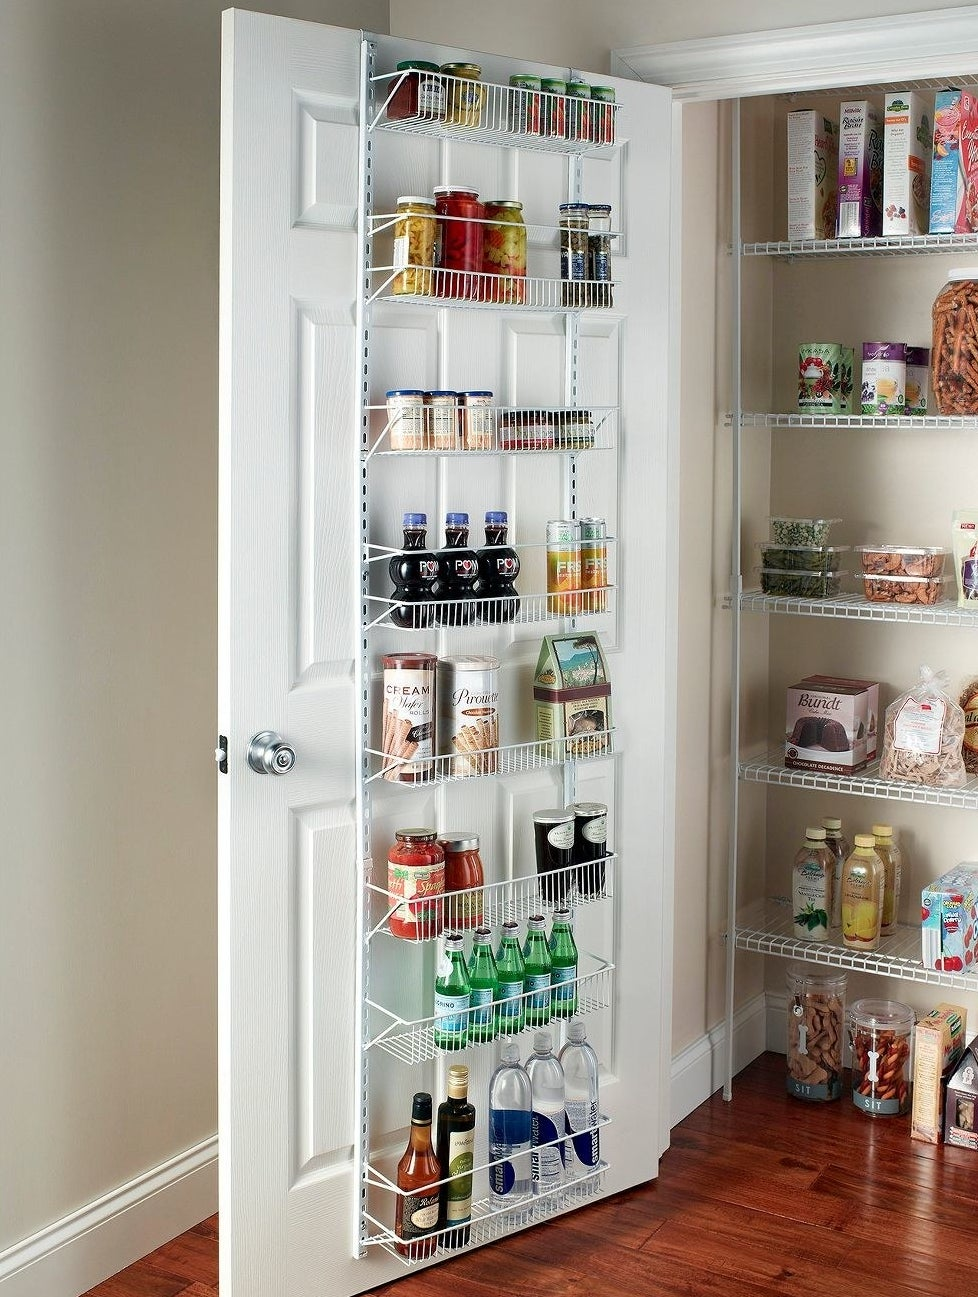 Storage rack in a pantry